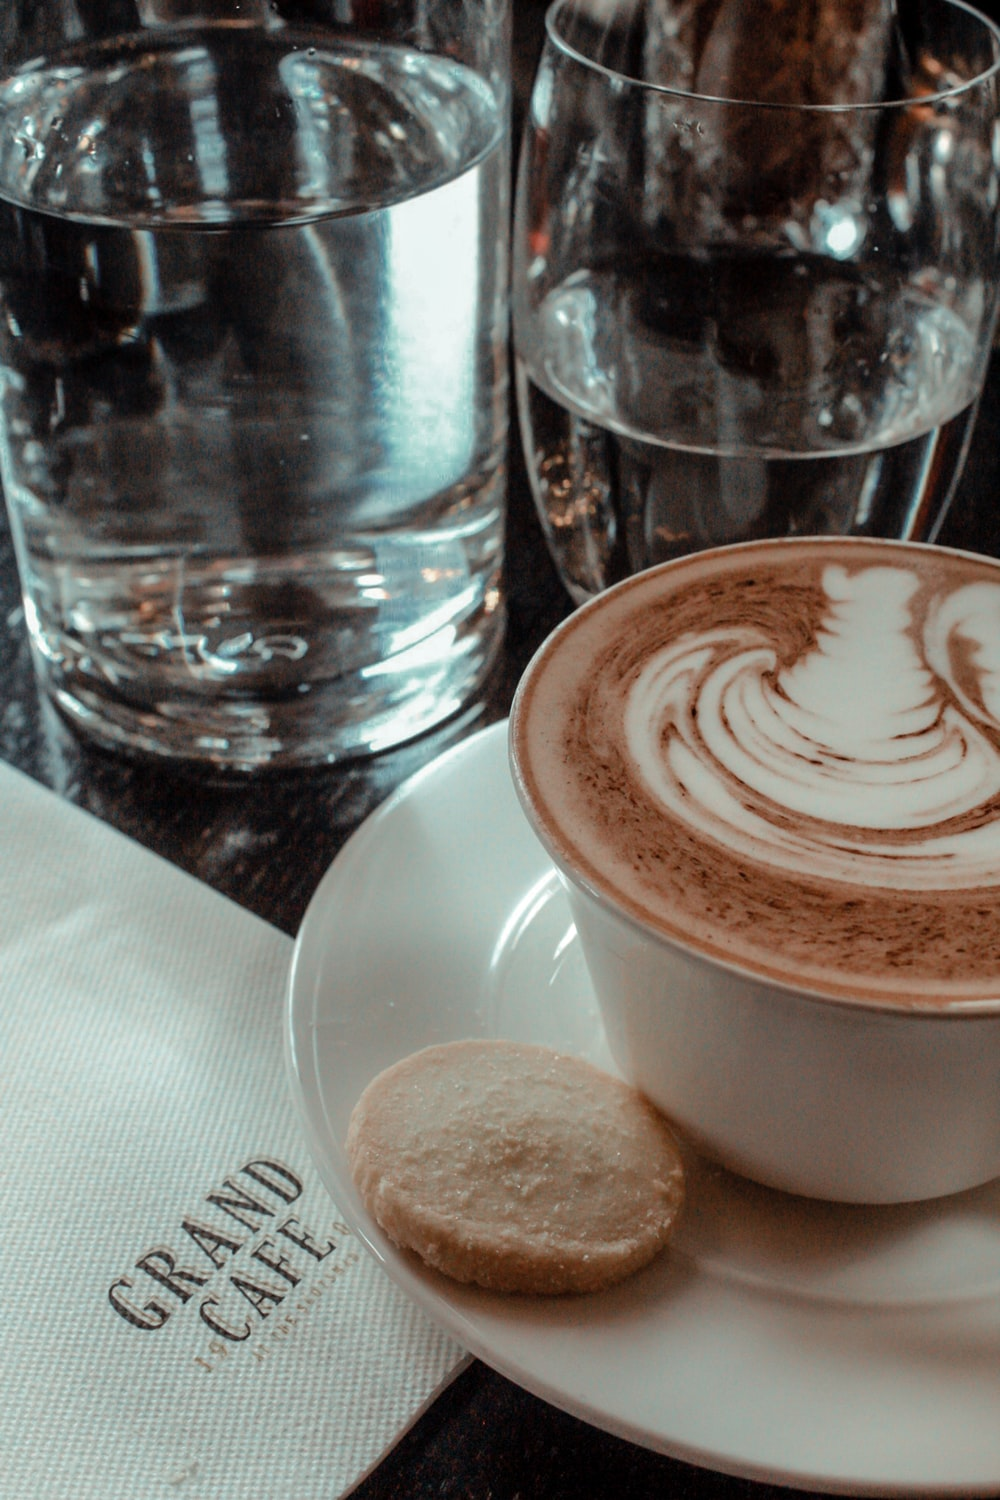 cup of latte and biscuit on saucer